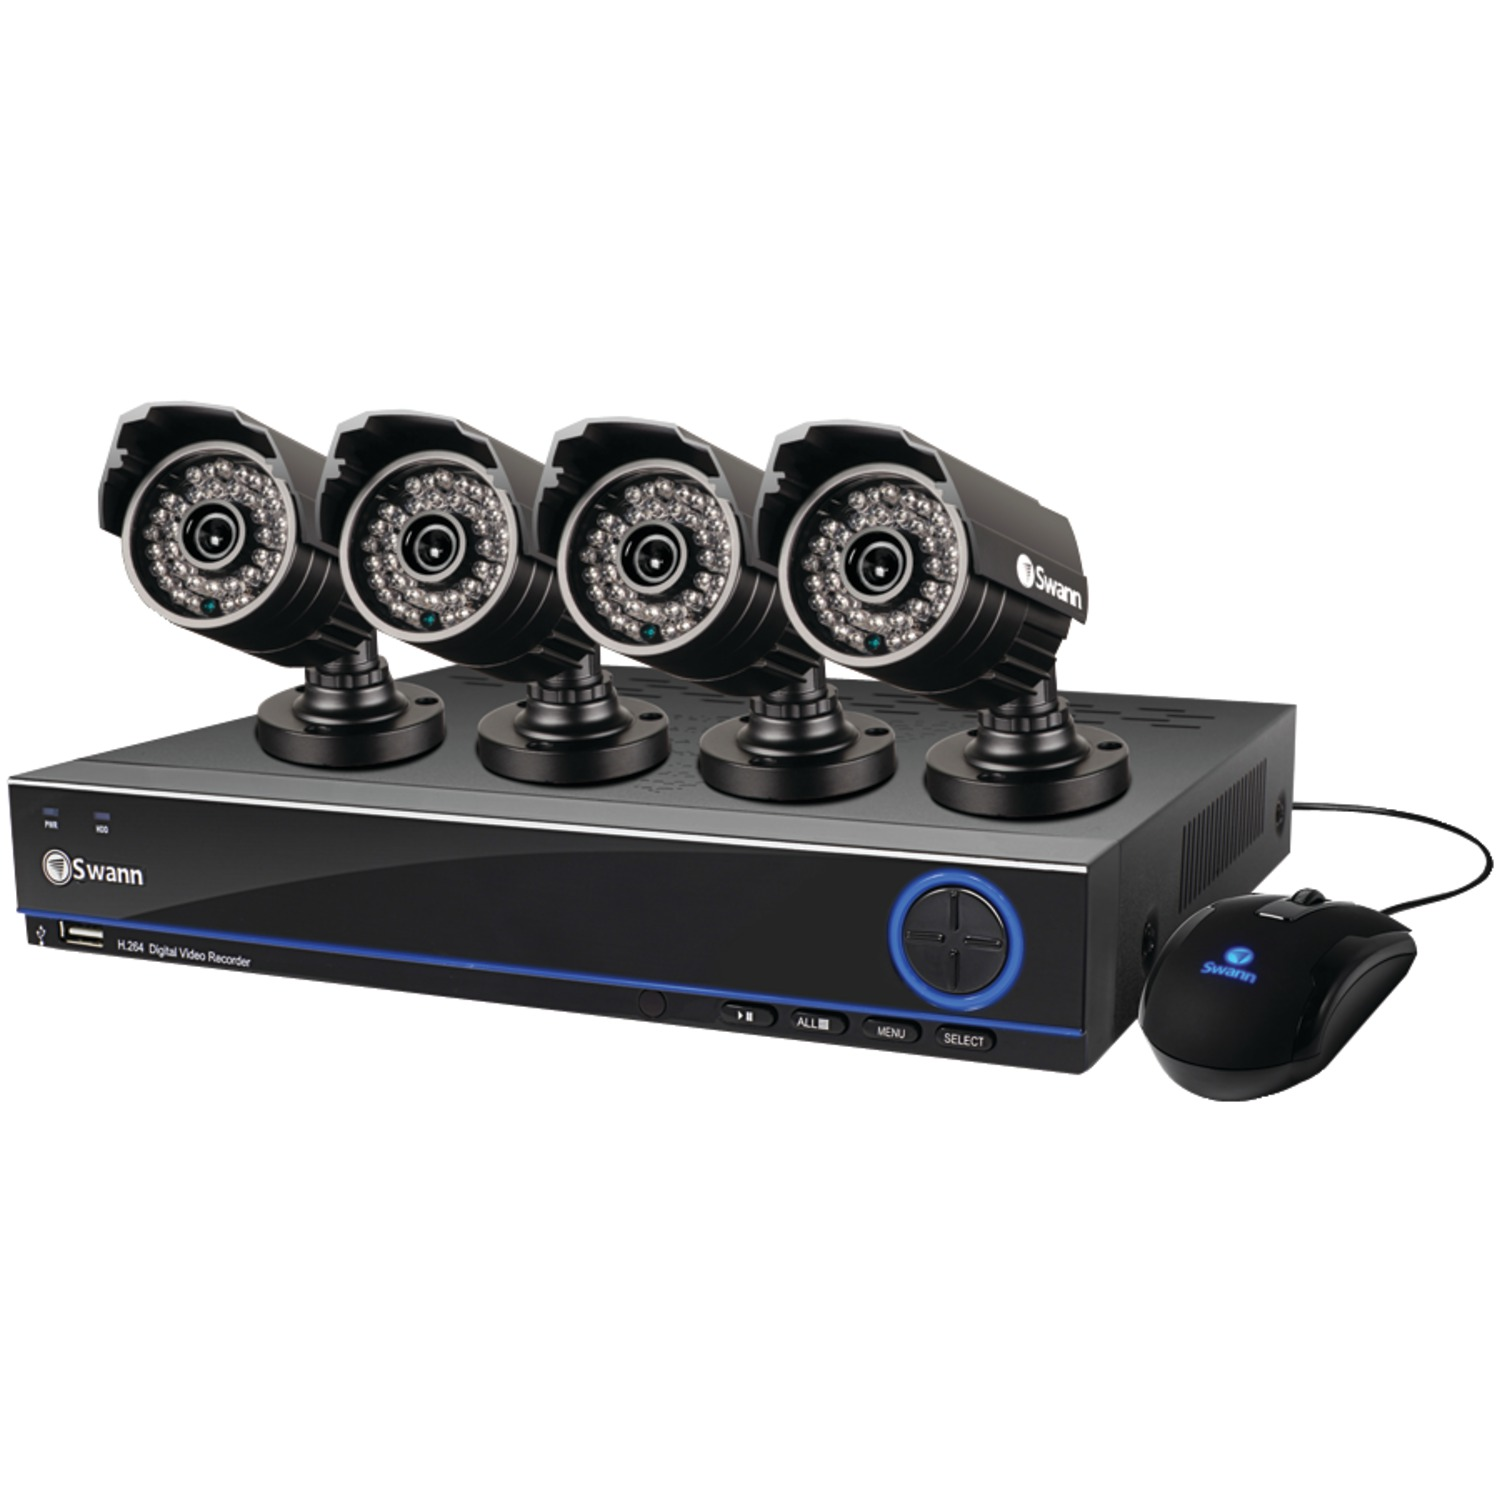 Swann Indoor/Outdoor SWDVK-832004S-US 3200 4-Channel 960H DVR with 500GB HDD and 700 TVL Camera Kit, 4-Pack